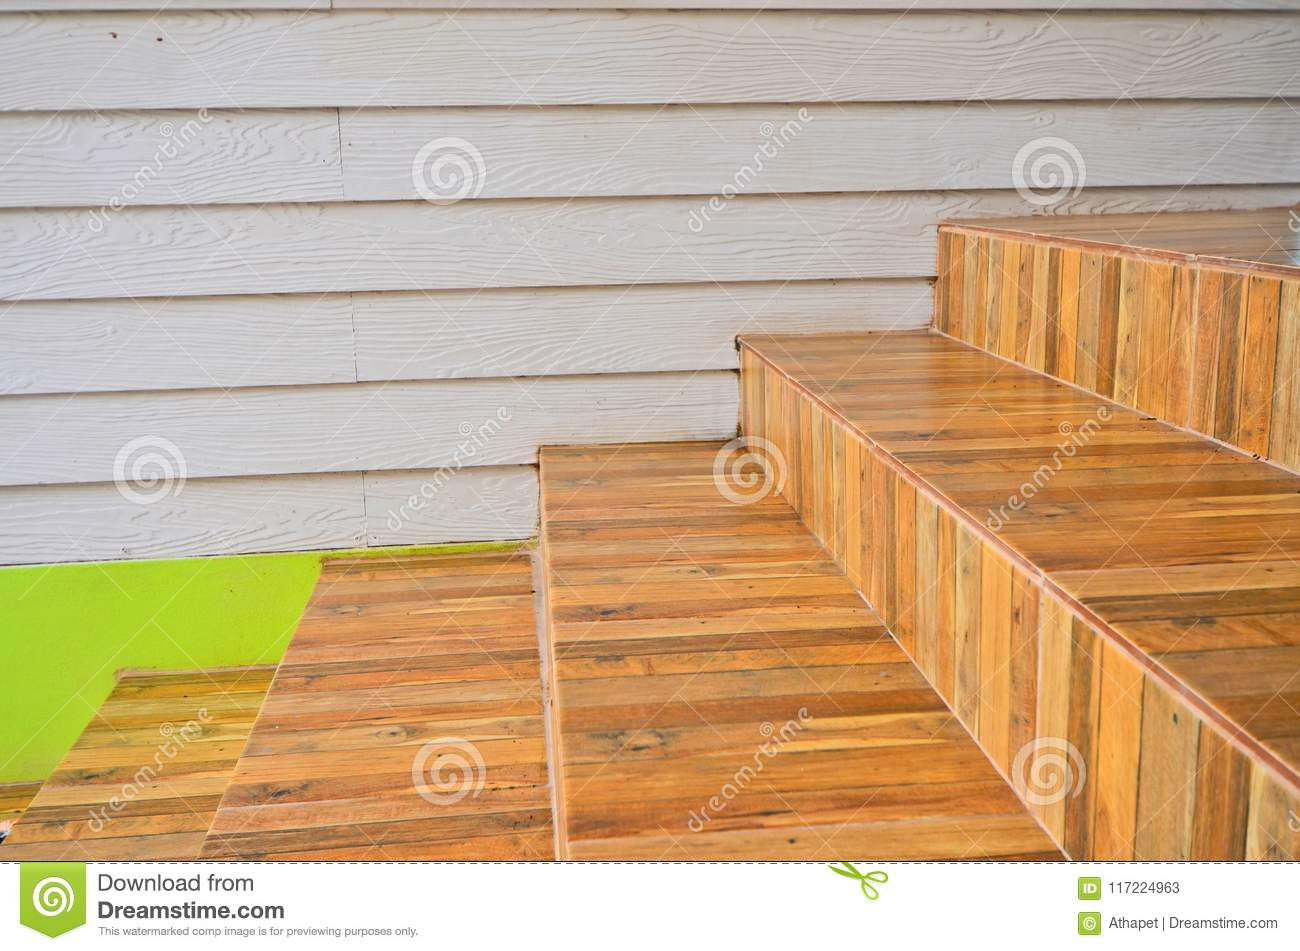 https www dreamstime com modern ceramic tile stairs to upstairswith wooden wall house ceramic tile stairs wood wall house image117224963